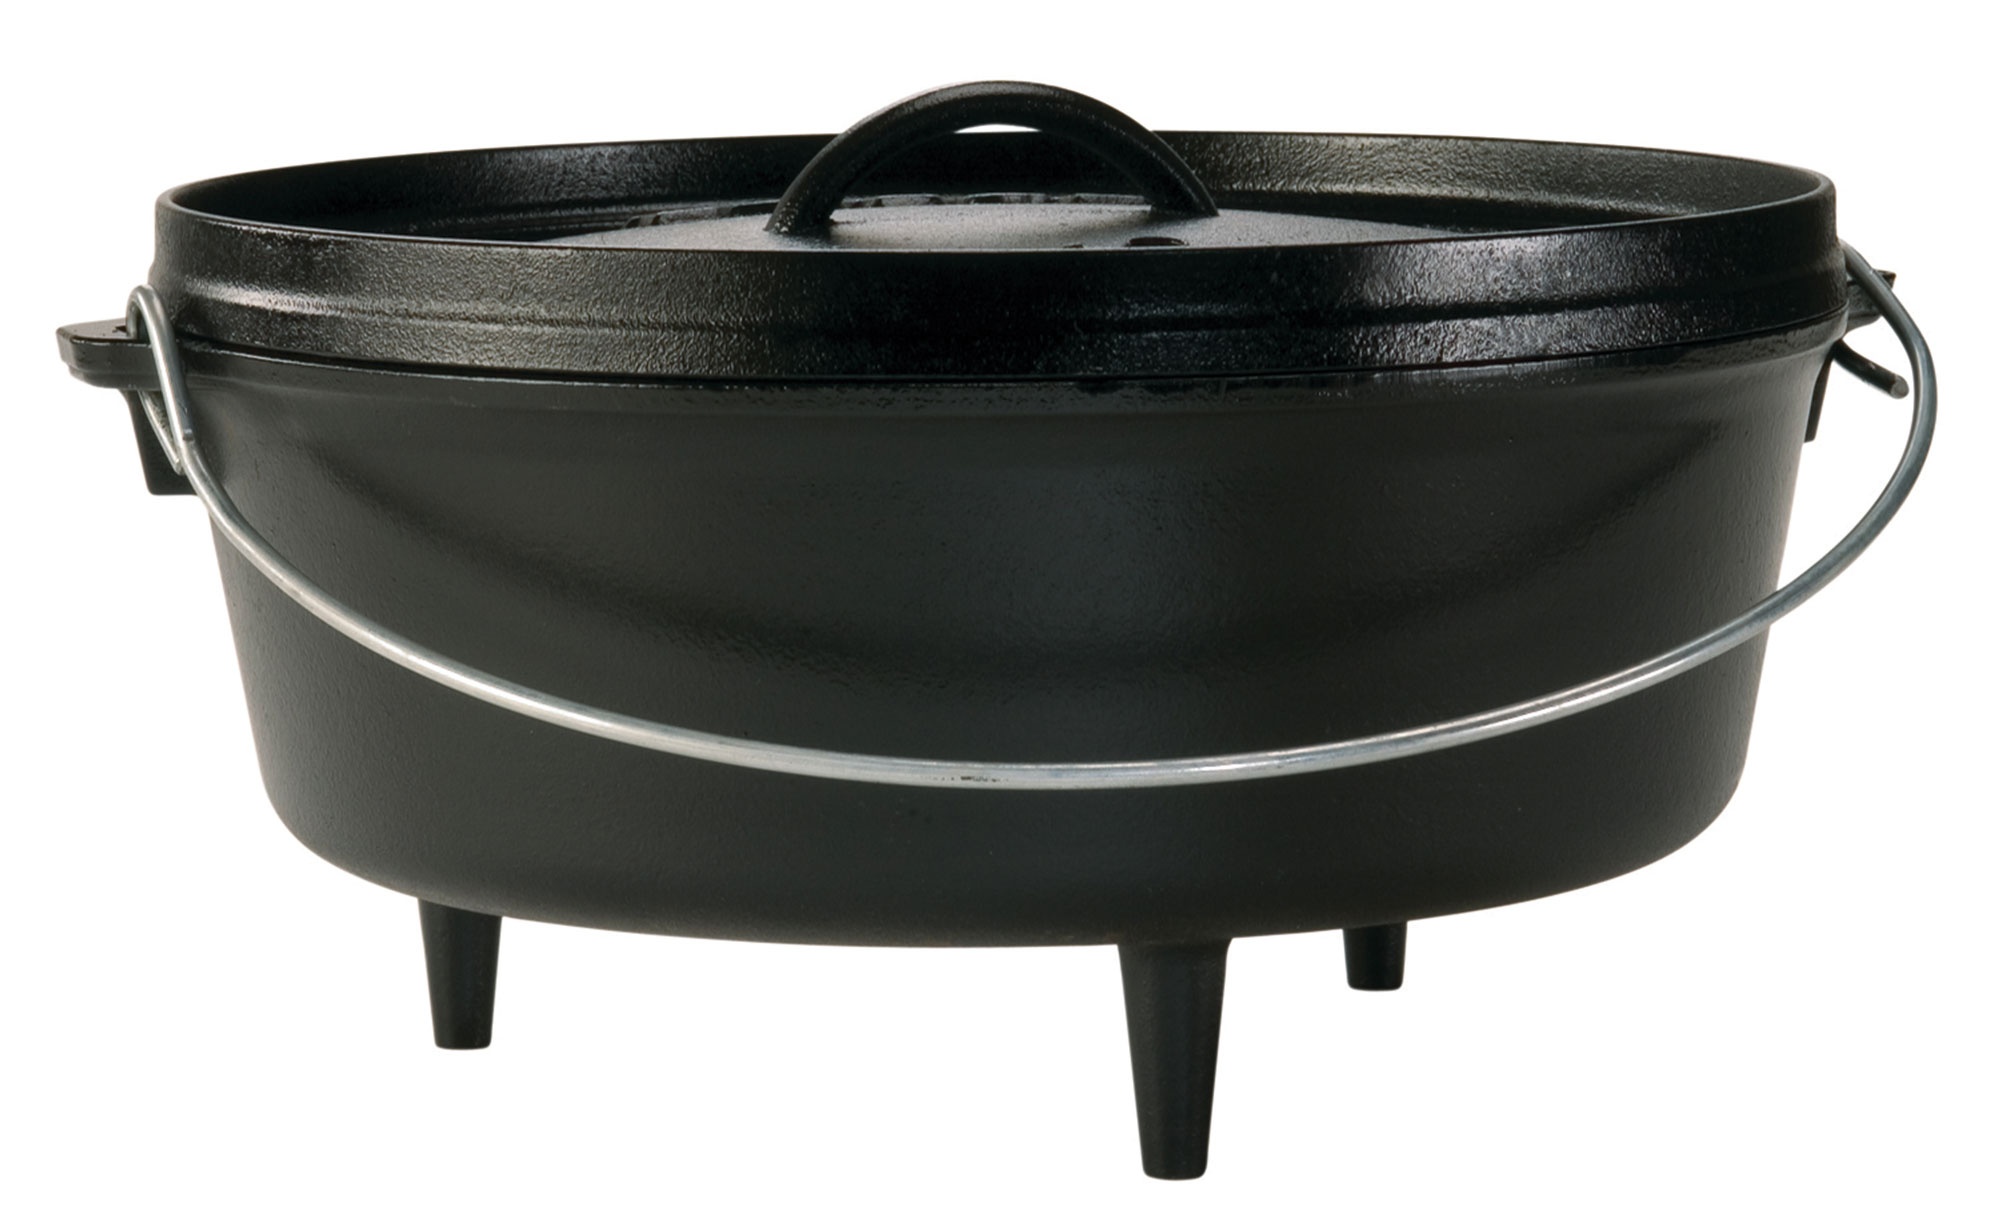 Lodge Logic Camp Dutch Oven / Eisen Topf Ø 30,5cm 5,7Liter Bild 1